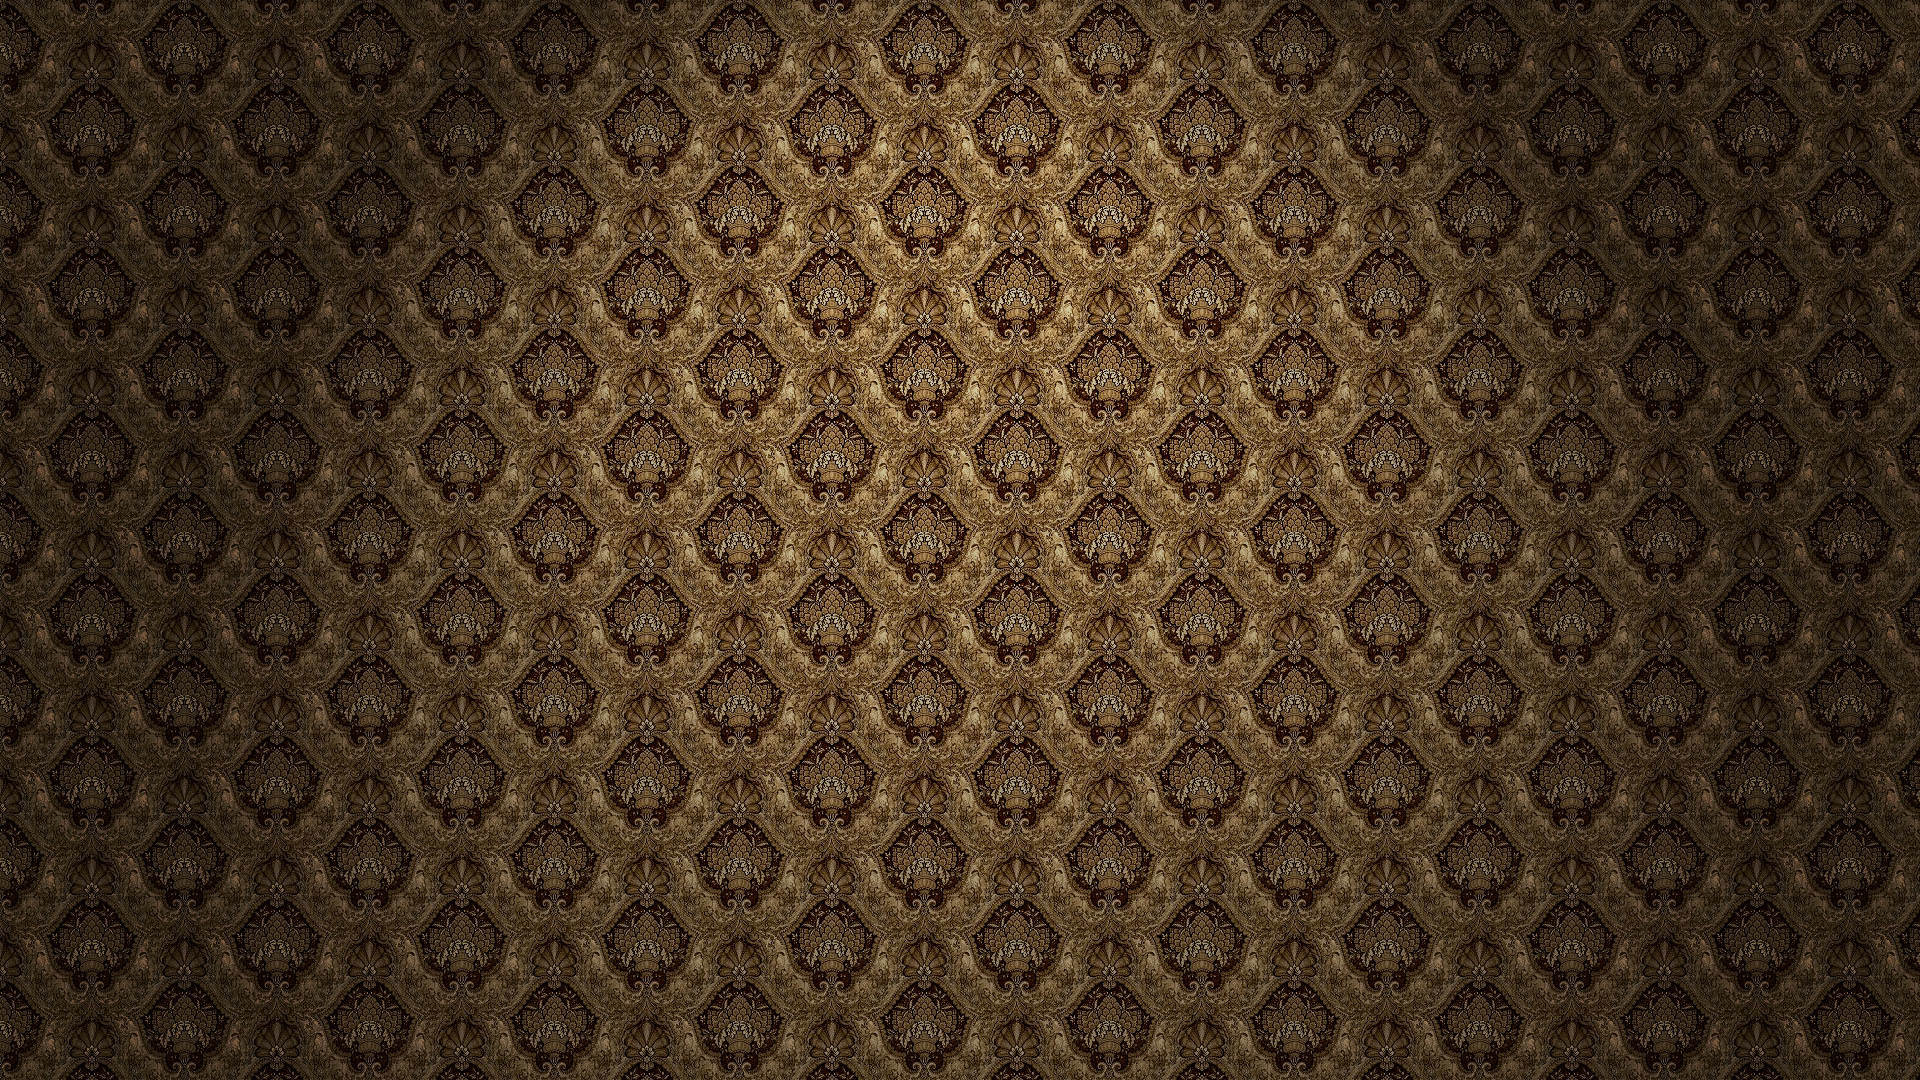 wallpapers and patterns on - photo #8